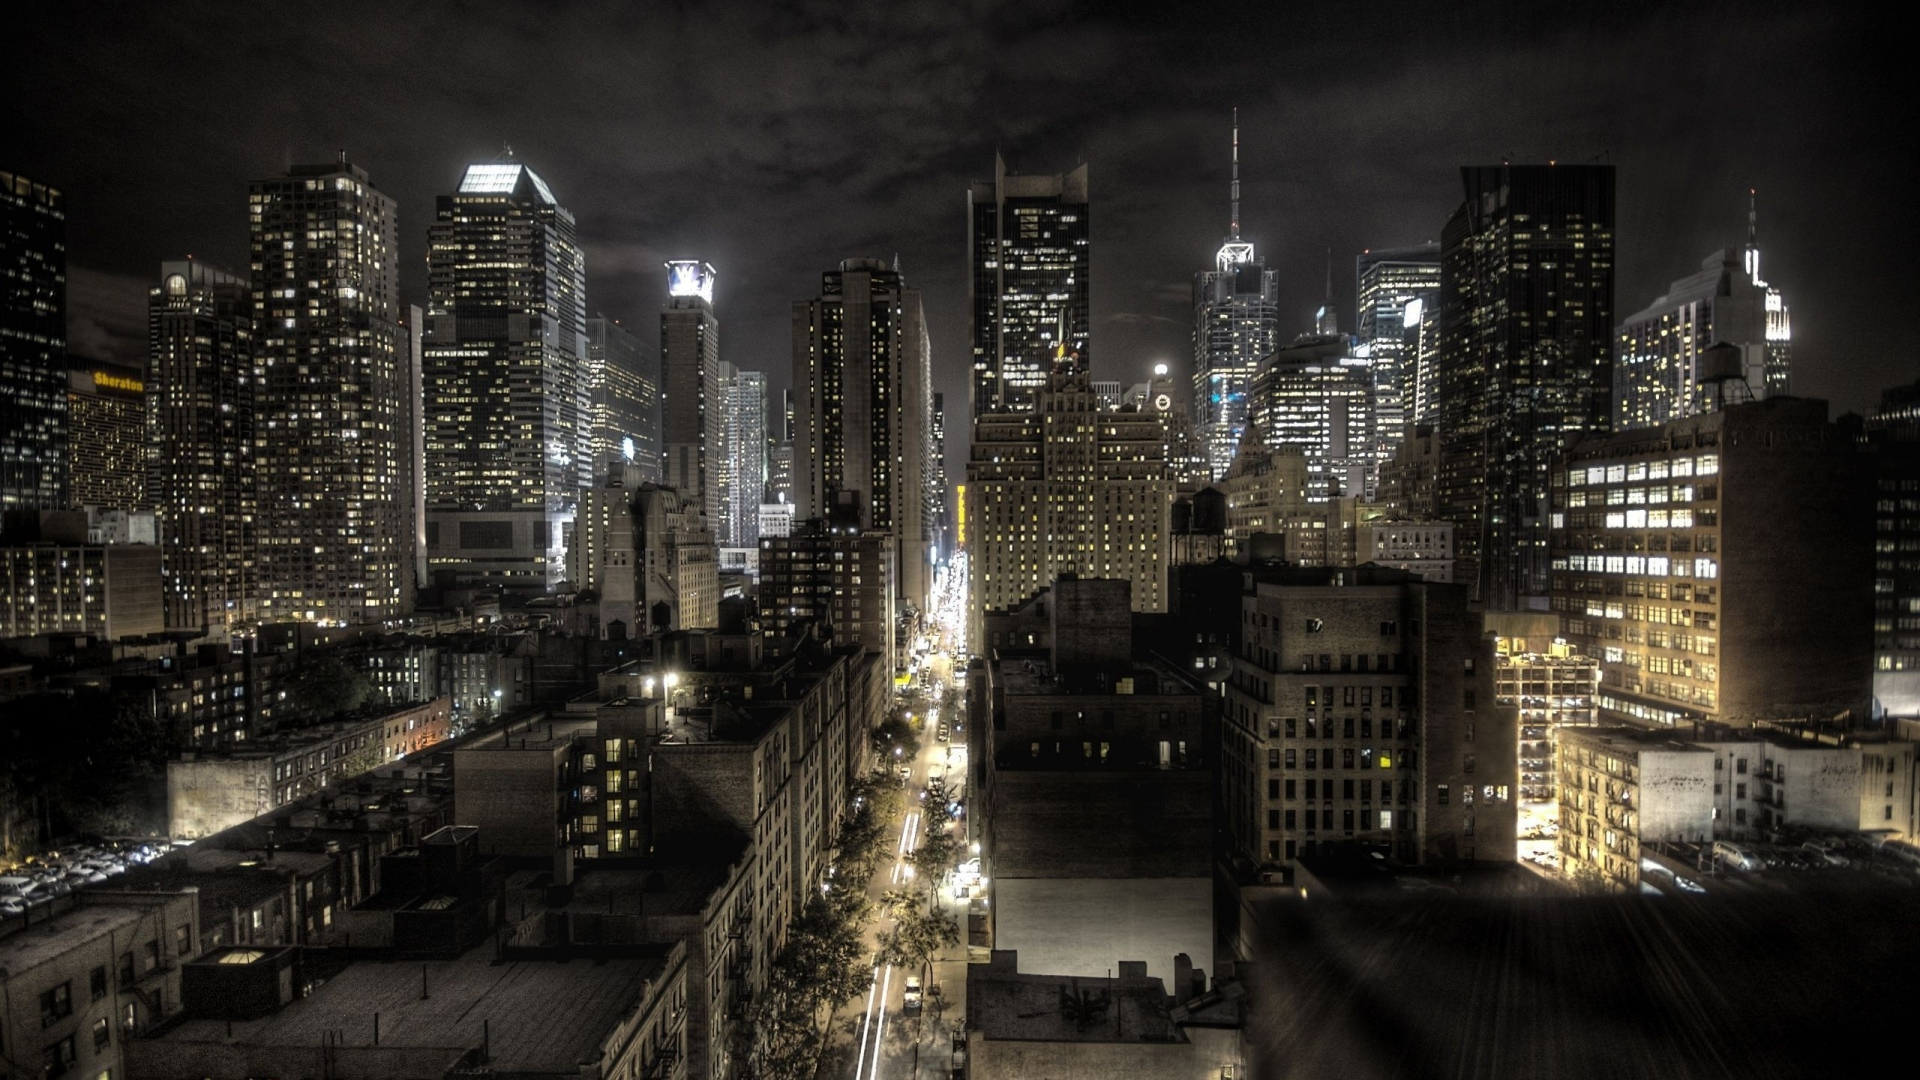 United States Of America Night Top View Hd Wallpapers - Night New York City - HD Wallpaper